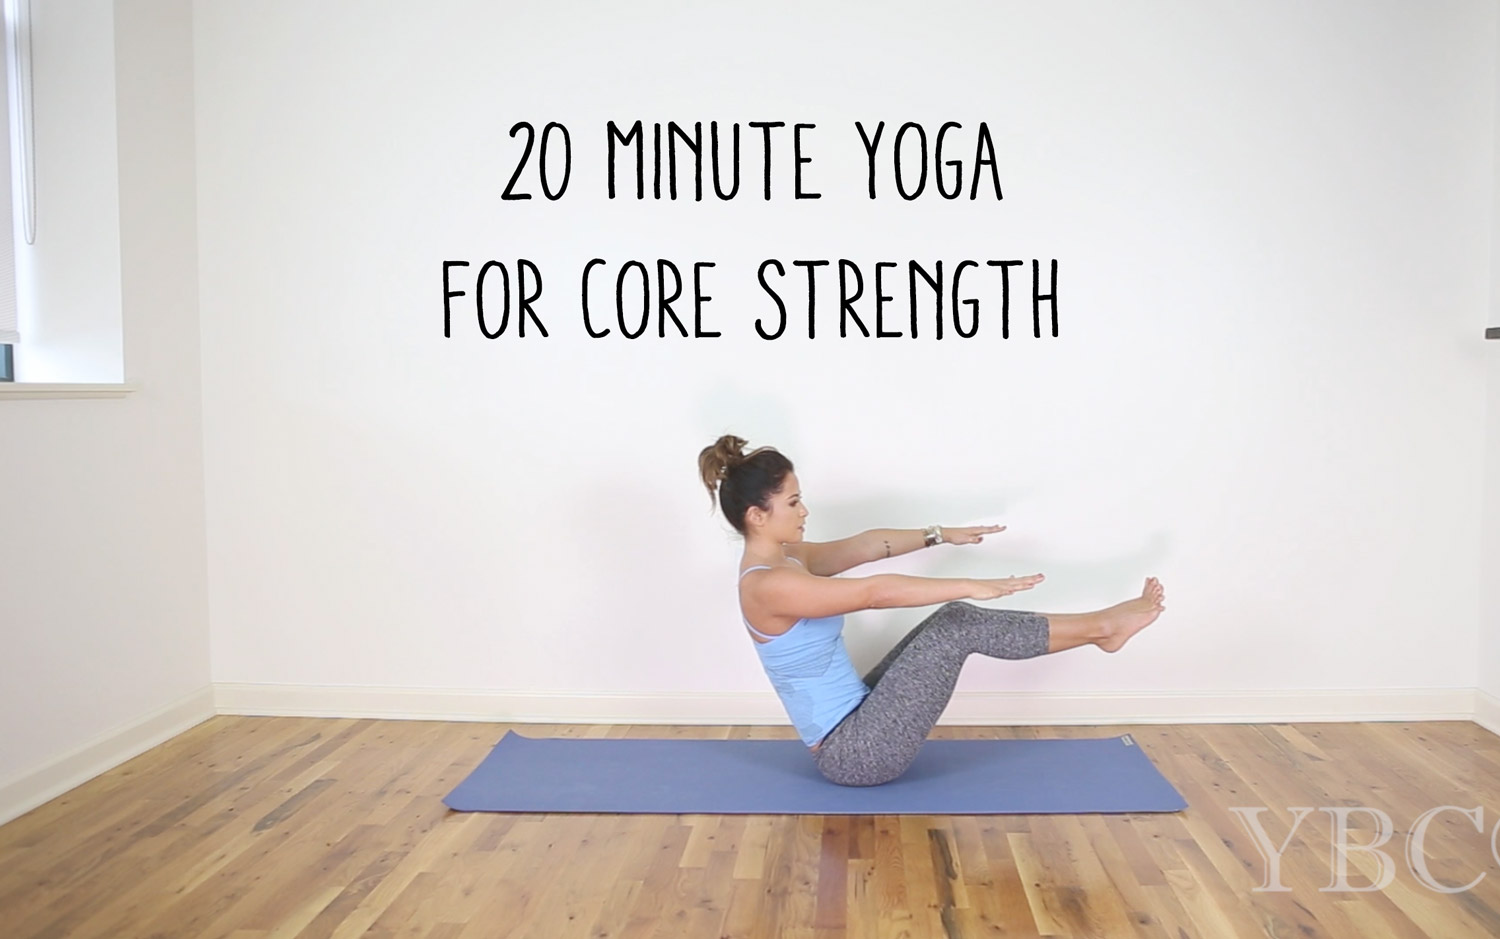 Pin now, and practice later!20 Minute video for core strength  Wearing: Beyond Yoga Capris , Sweaty Betty top c/o. Using: Jade Yoga Mat .